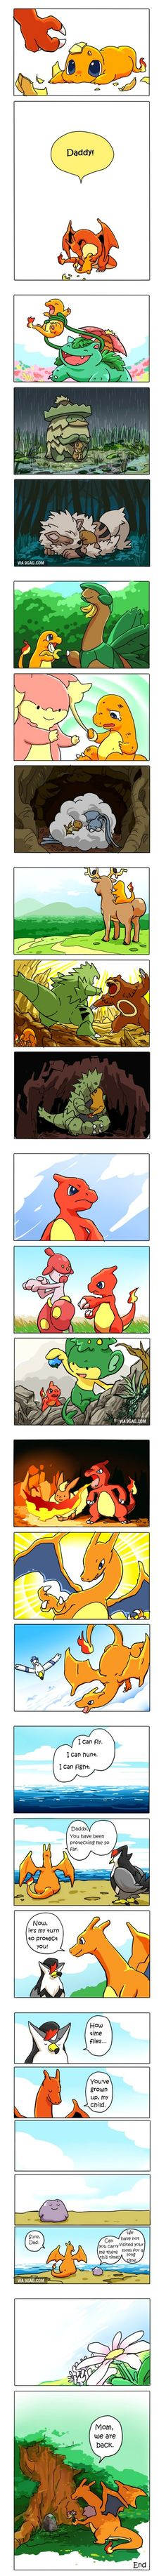 OH MY GOD THE FEELS. His mama died so a ditto turned into a charizard to take care of him until he could protect himself ;-;